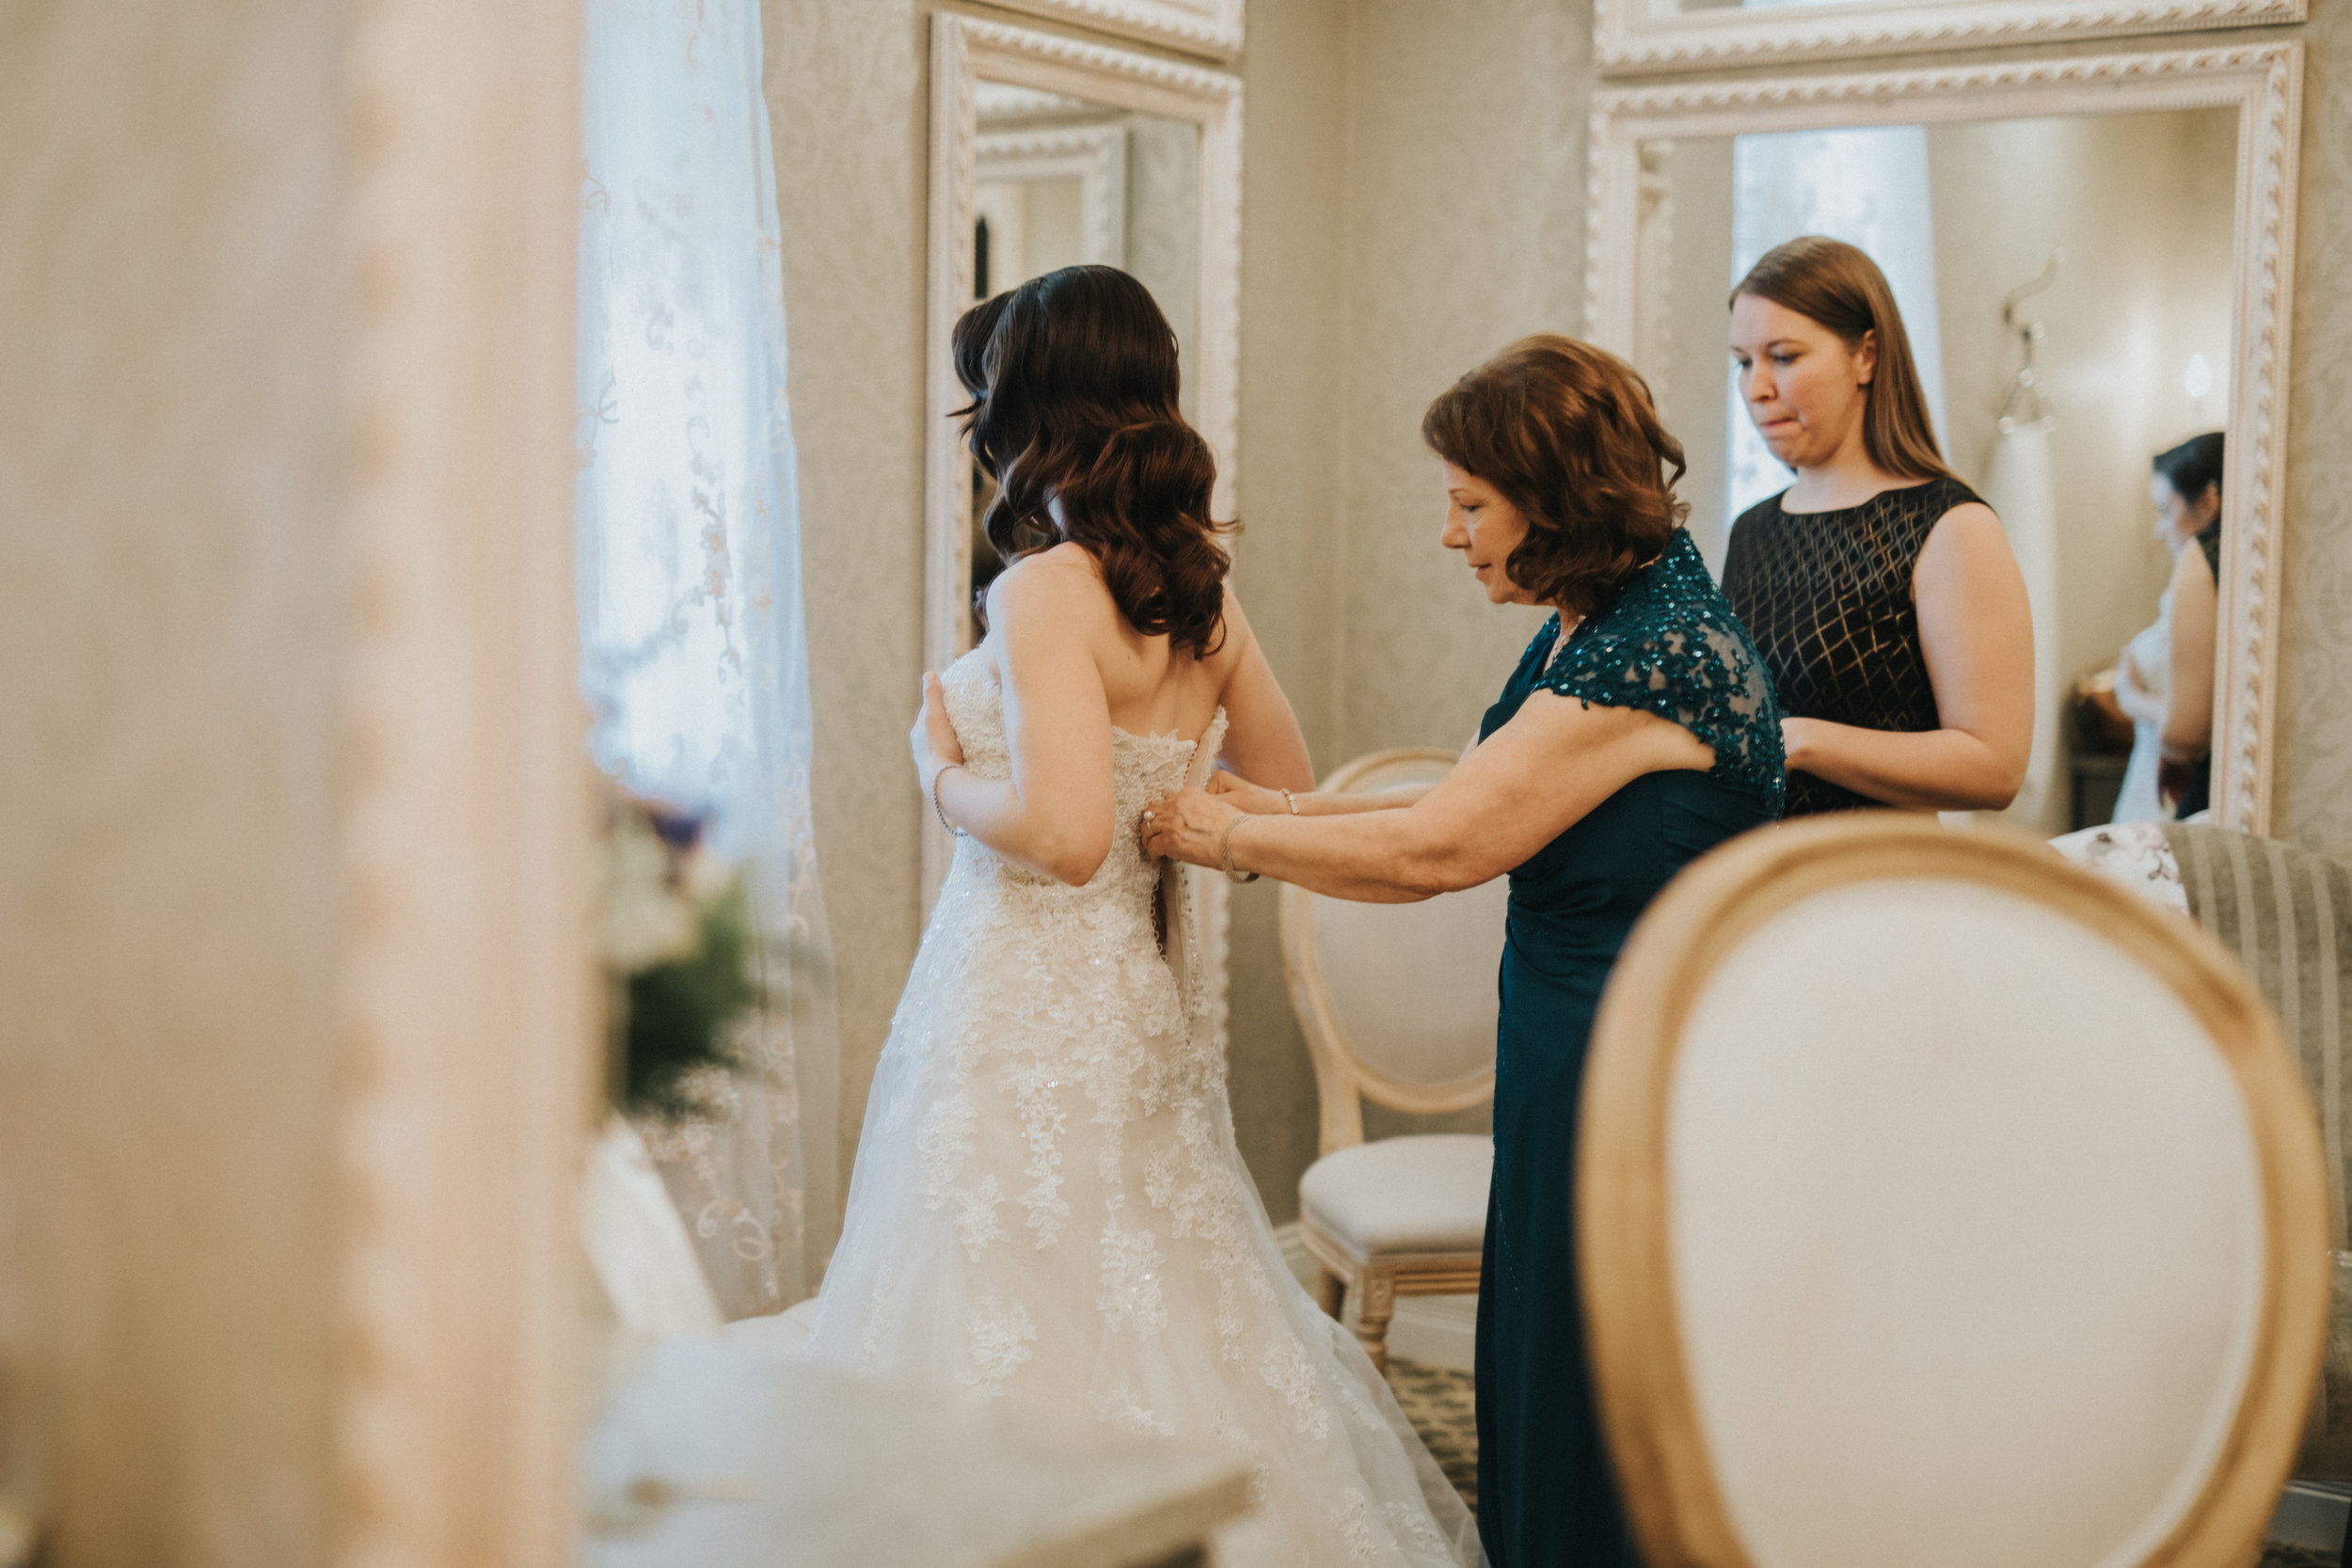 Bride getting into dress with mom at Nicollet Island Inn | Russell Heeter Photography :: Minneapolis wedding planner Sixpence Events :: Nicollet Island Pavilion :: april wedding in Minnesota.jpg